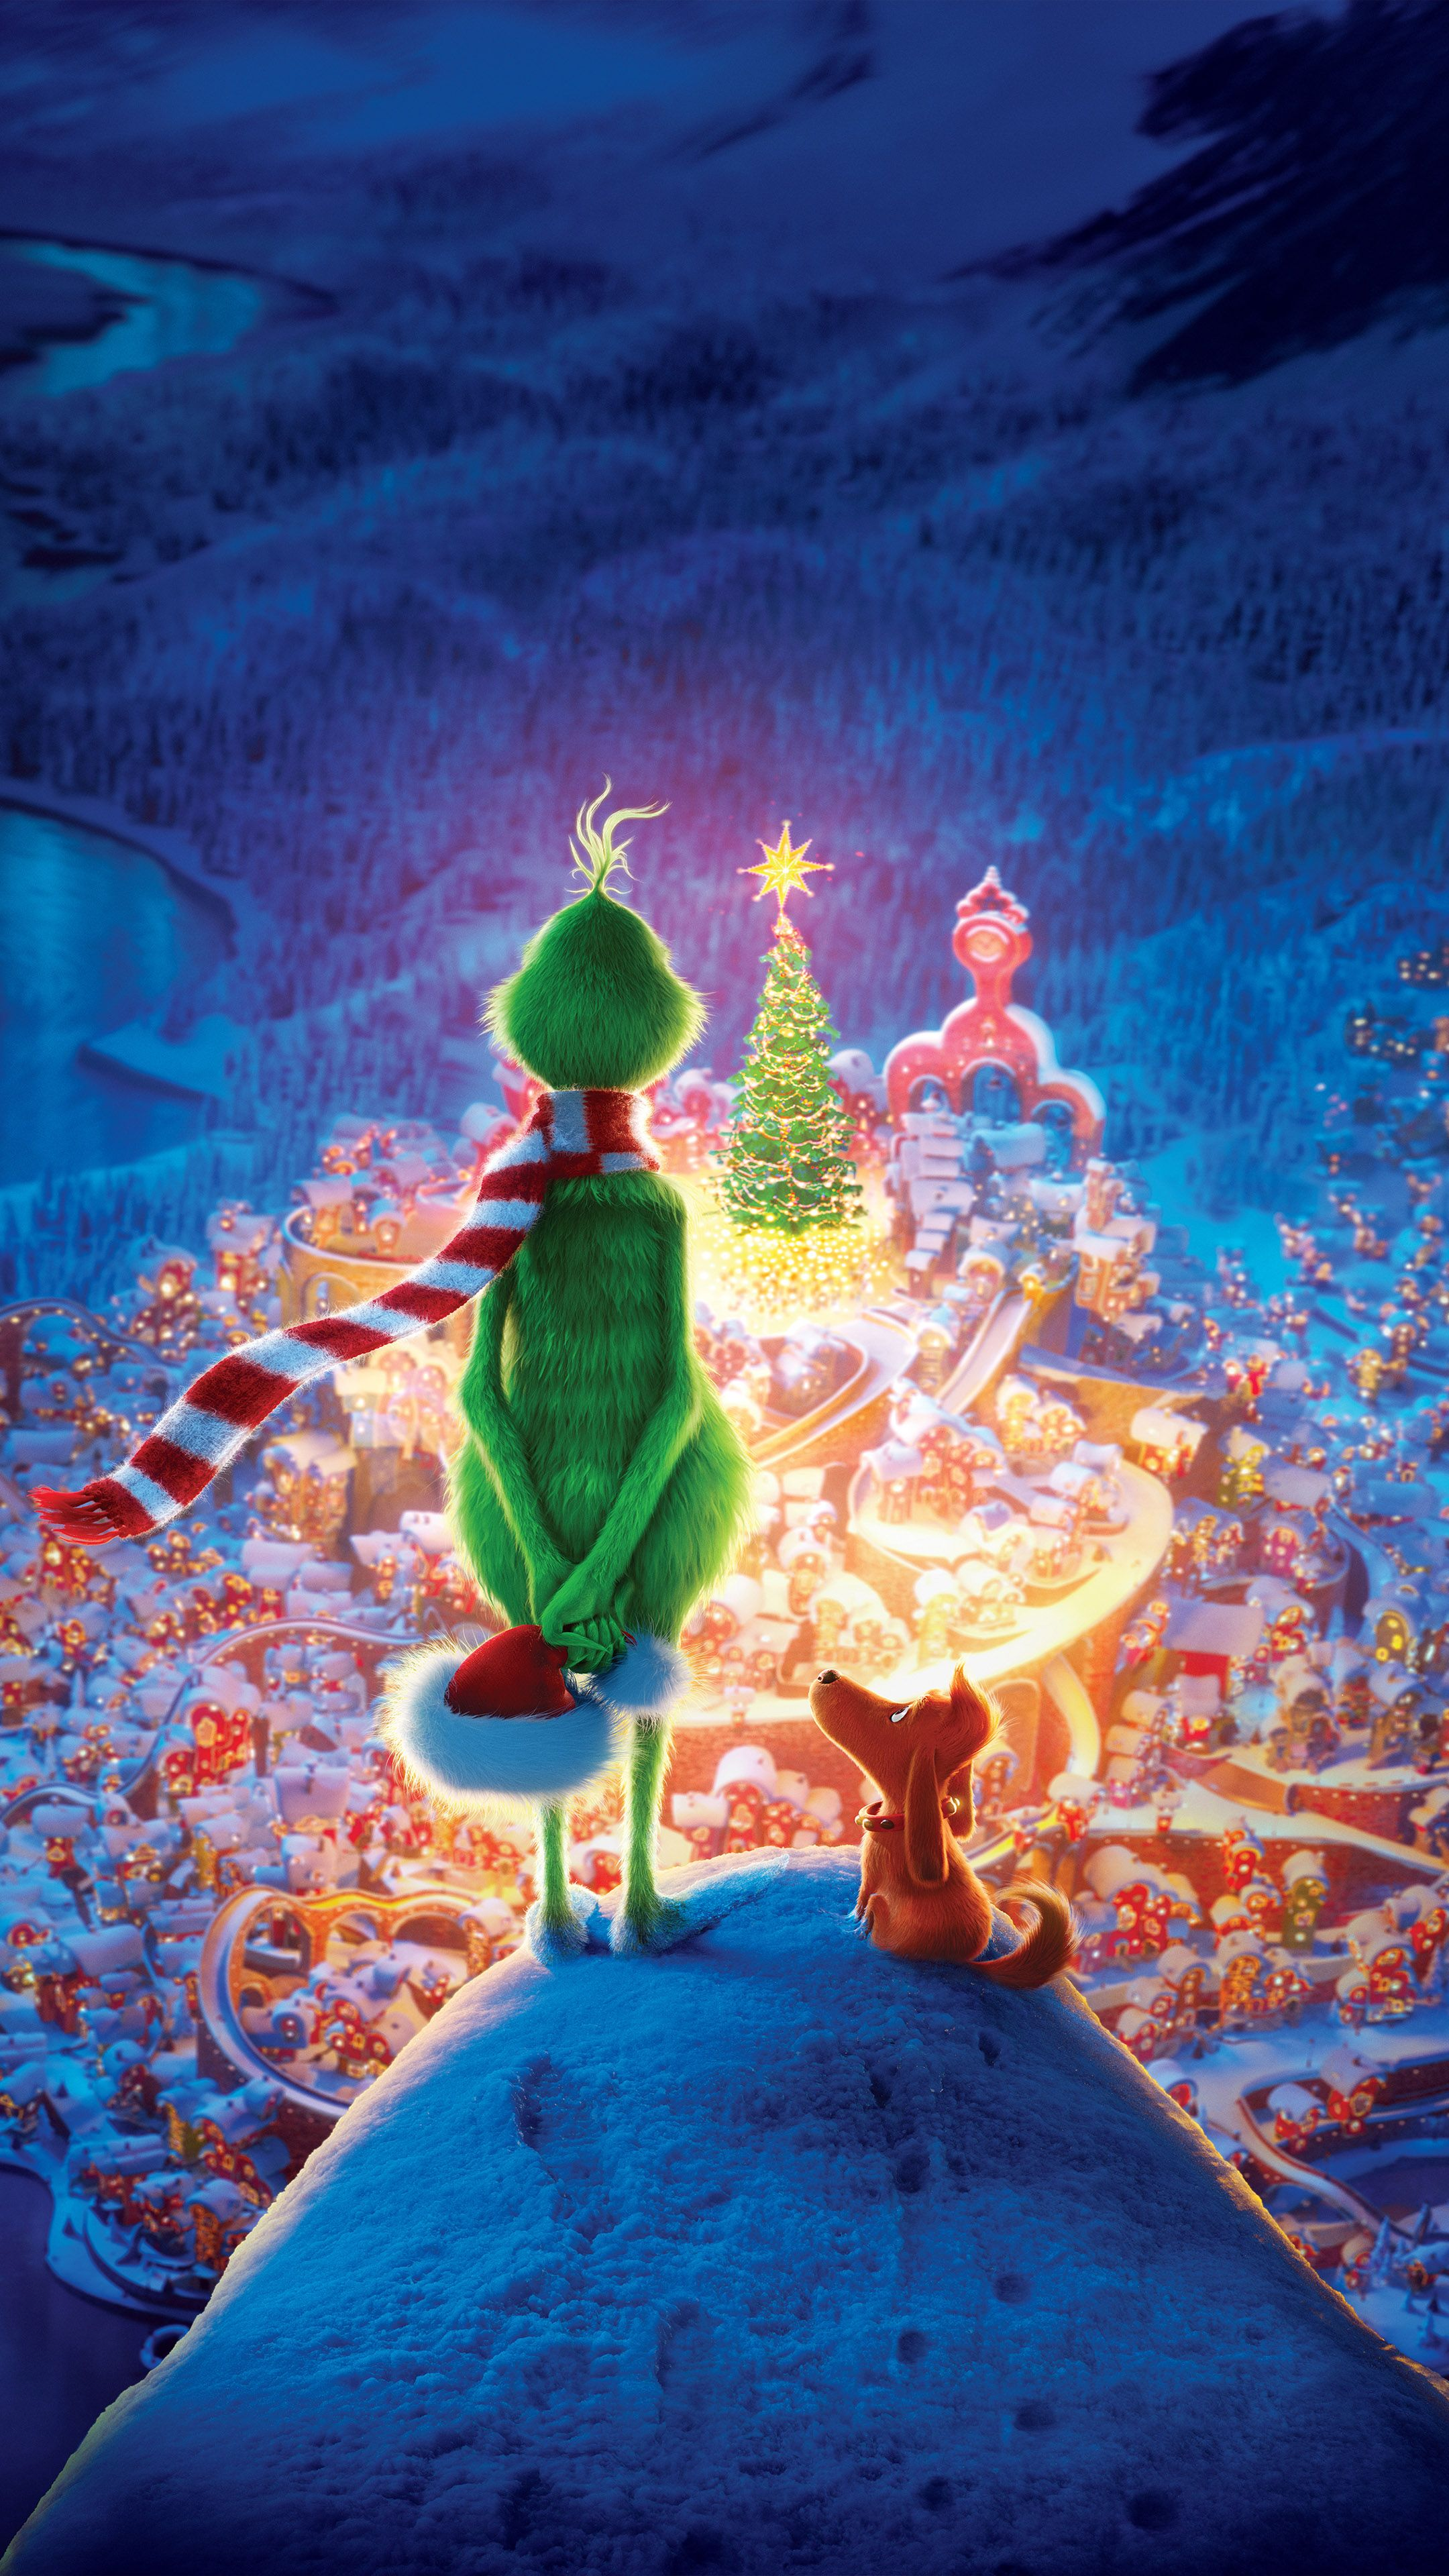 The Grinch Animation 2018 4k Ultra Hd Mobile Wallpaper In 2020 Cute Christmas Wallpaper Christmas Phone Wallpaper Christmas Wallpaper Iphone Cute